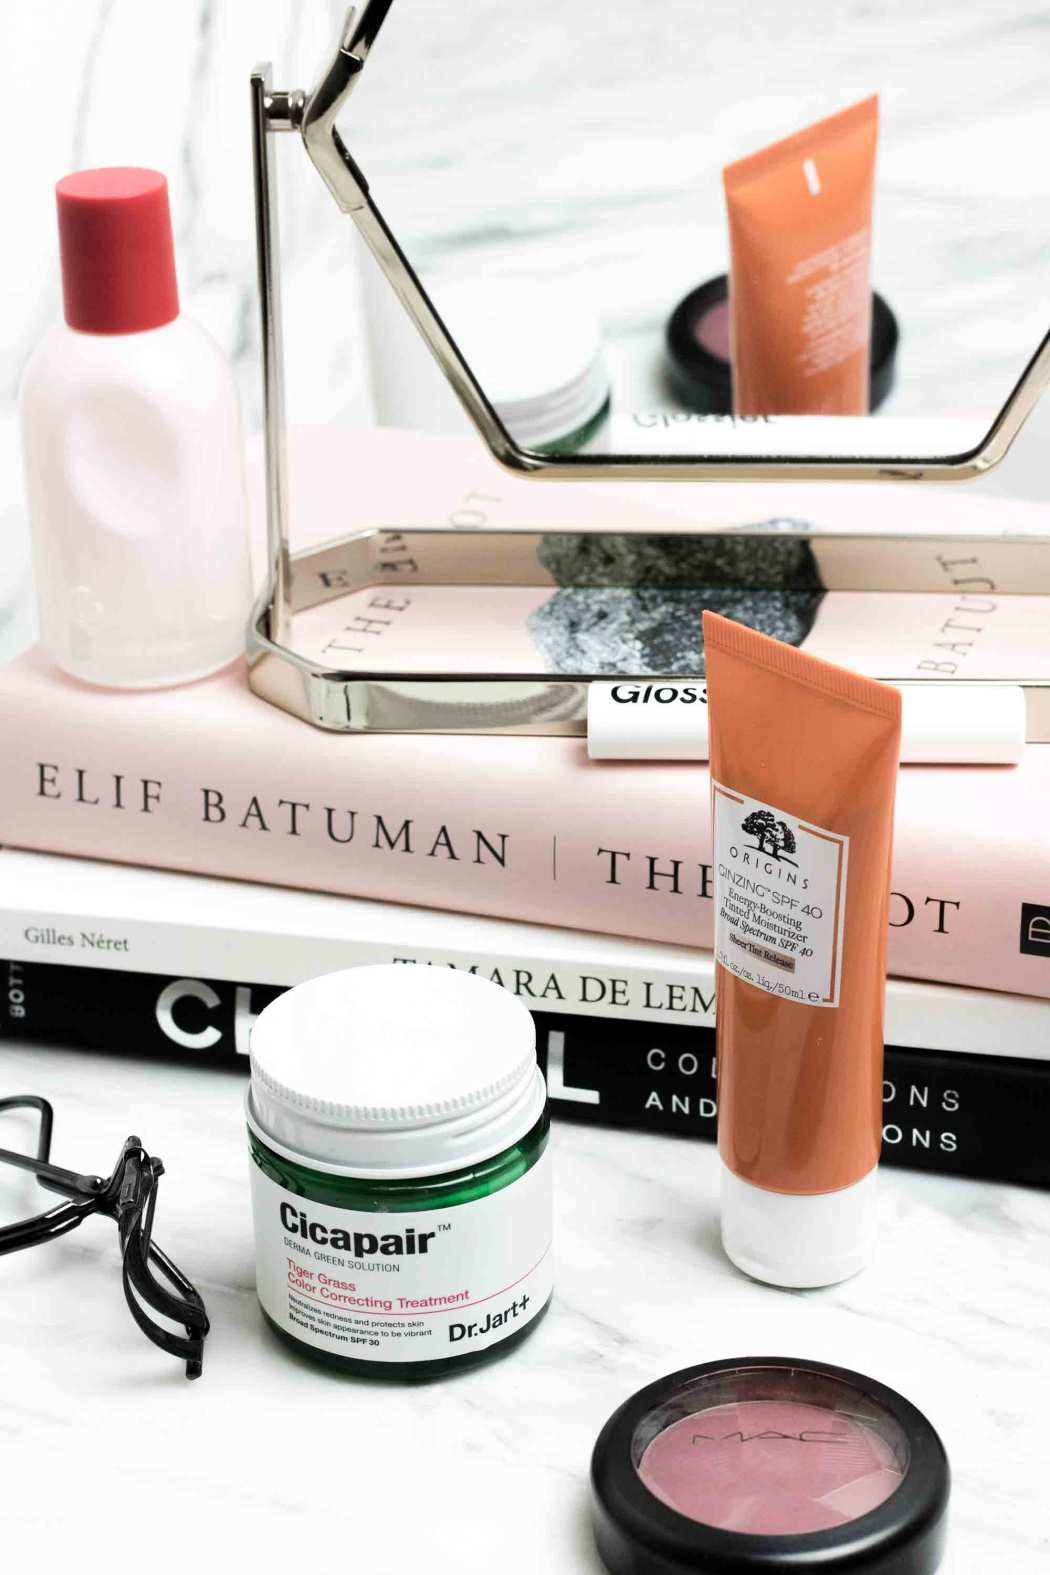 Beauty products I'm loving | Origins Tinted Moisturizer, Dr. Jart Cicapair Color Treatment, Glossier Like, Glossier You, MAC Breath of Plum